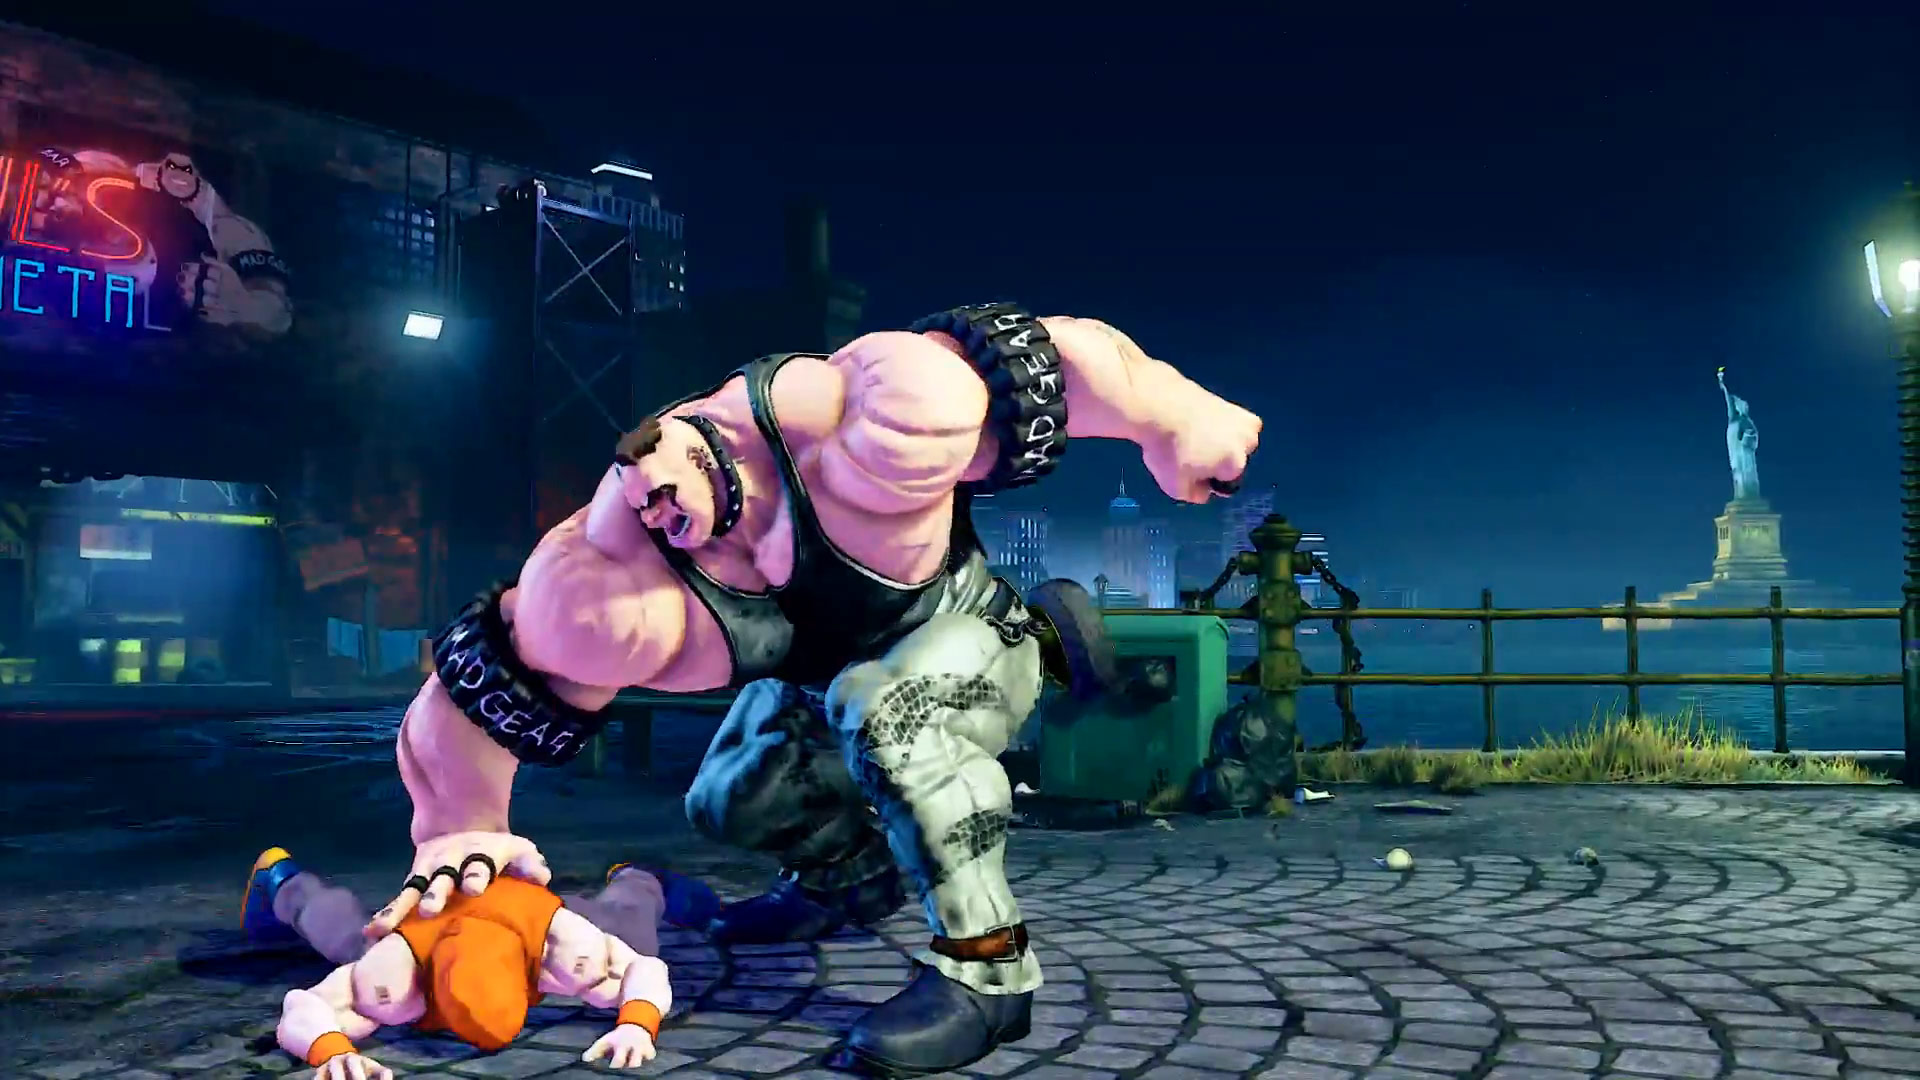 Abigail Street Fighter 5 screen shots 5 out of 11 image gallery